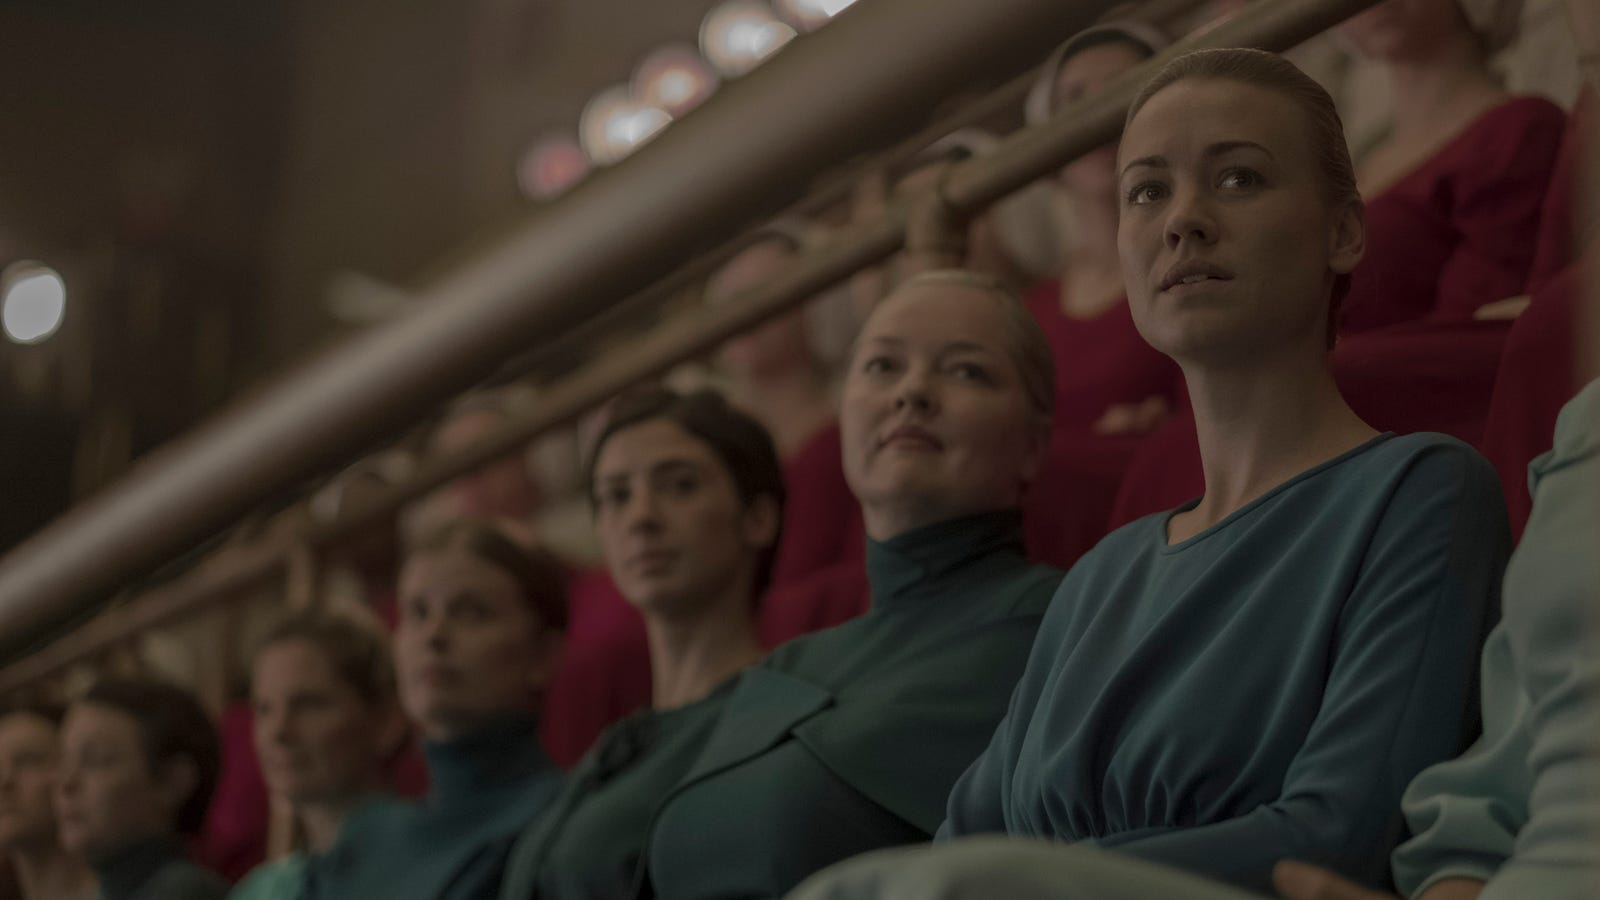 On This Week's Grim, Gruesome Handmaid's Tale, Gilead Rolls Out Its Eeriest Ritual Yet